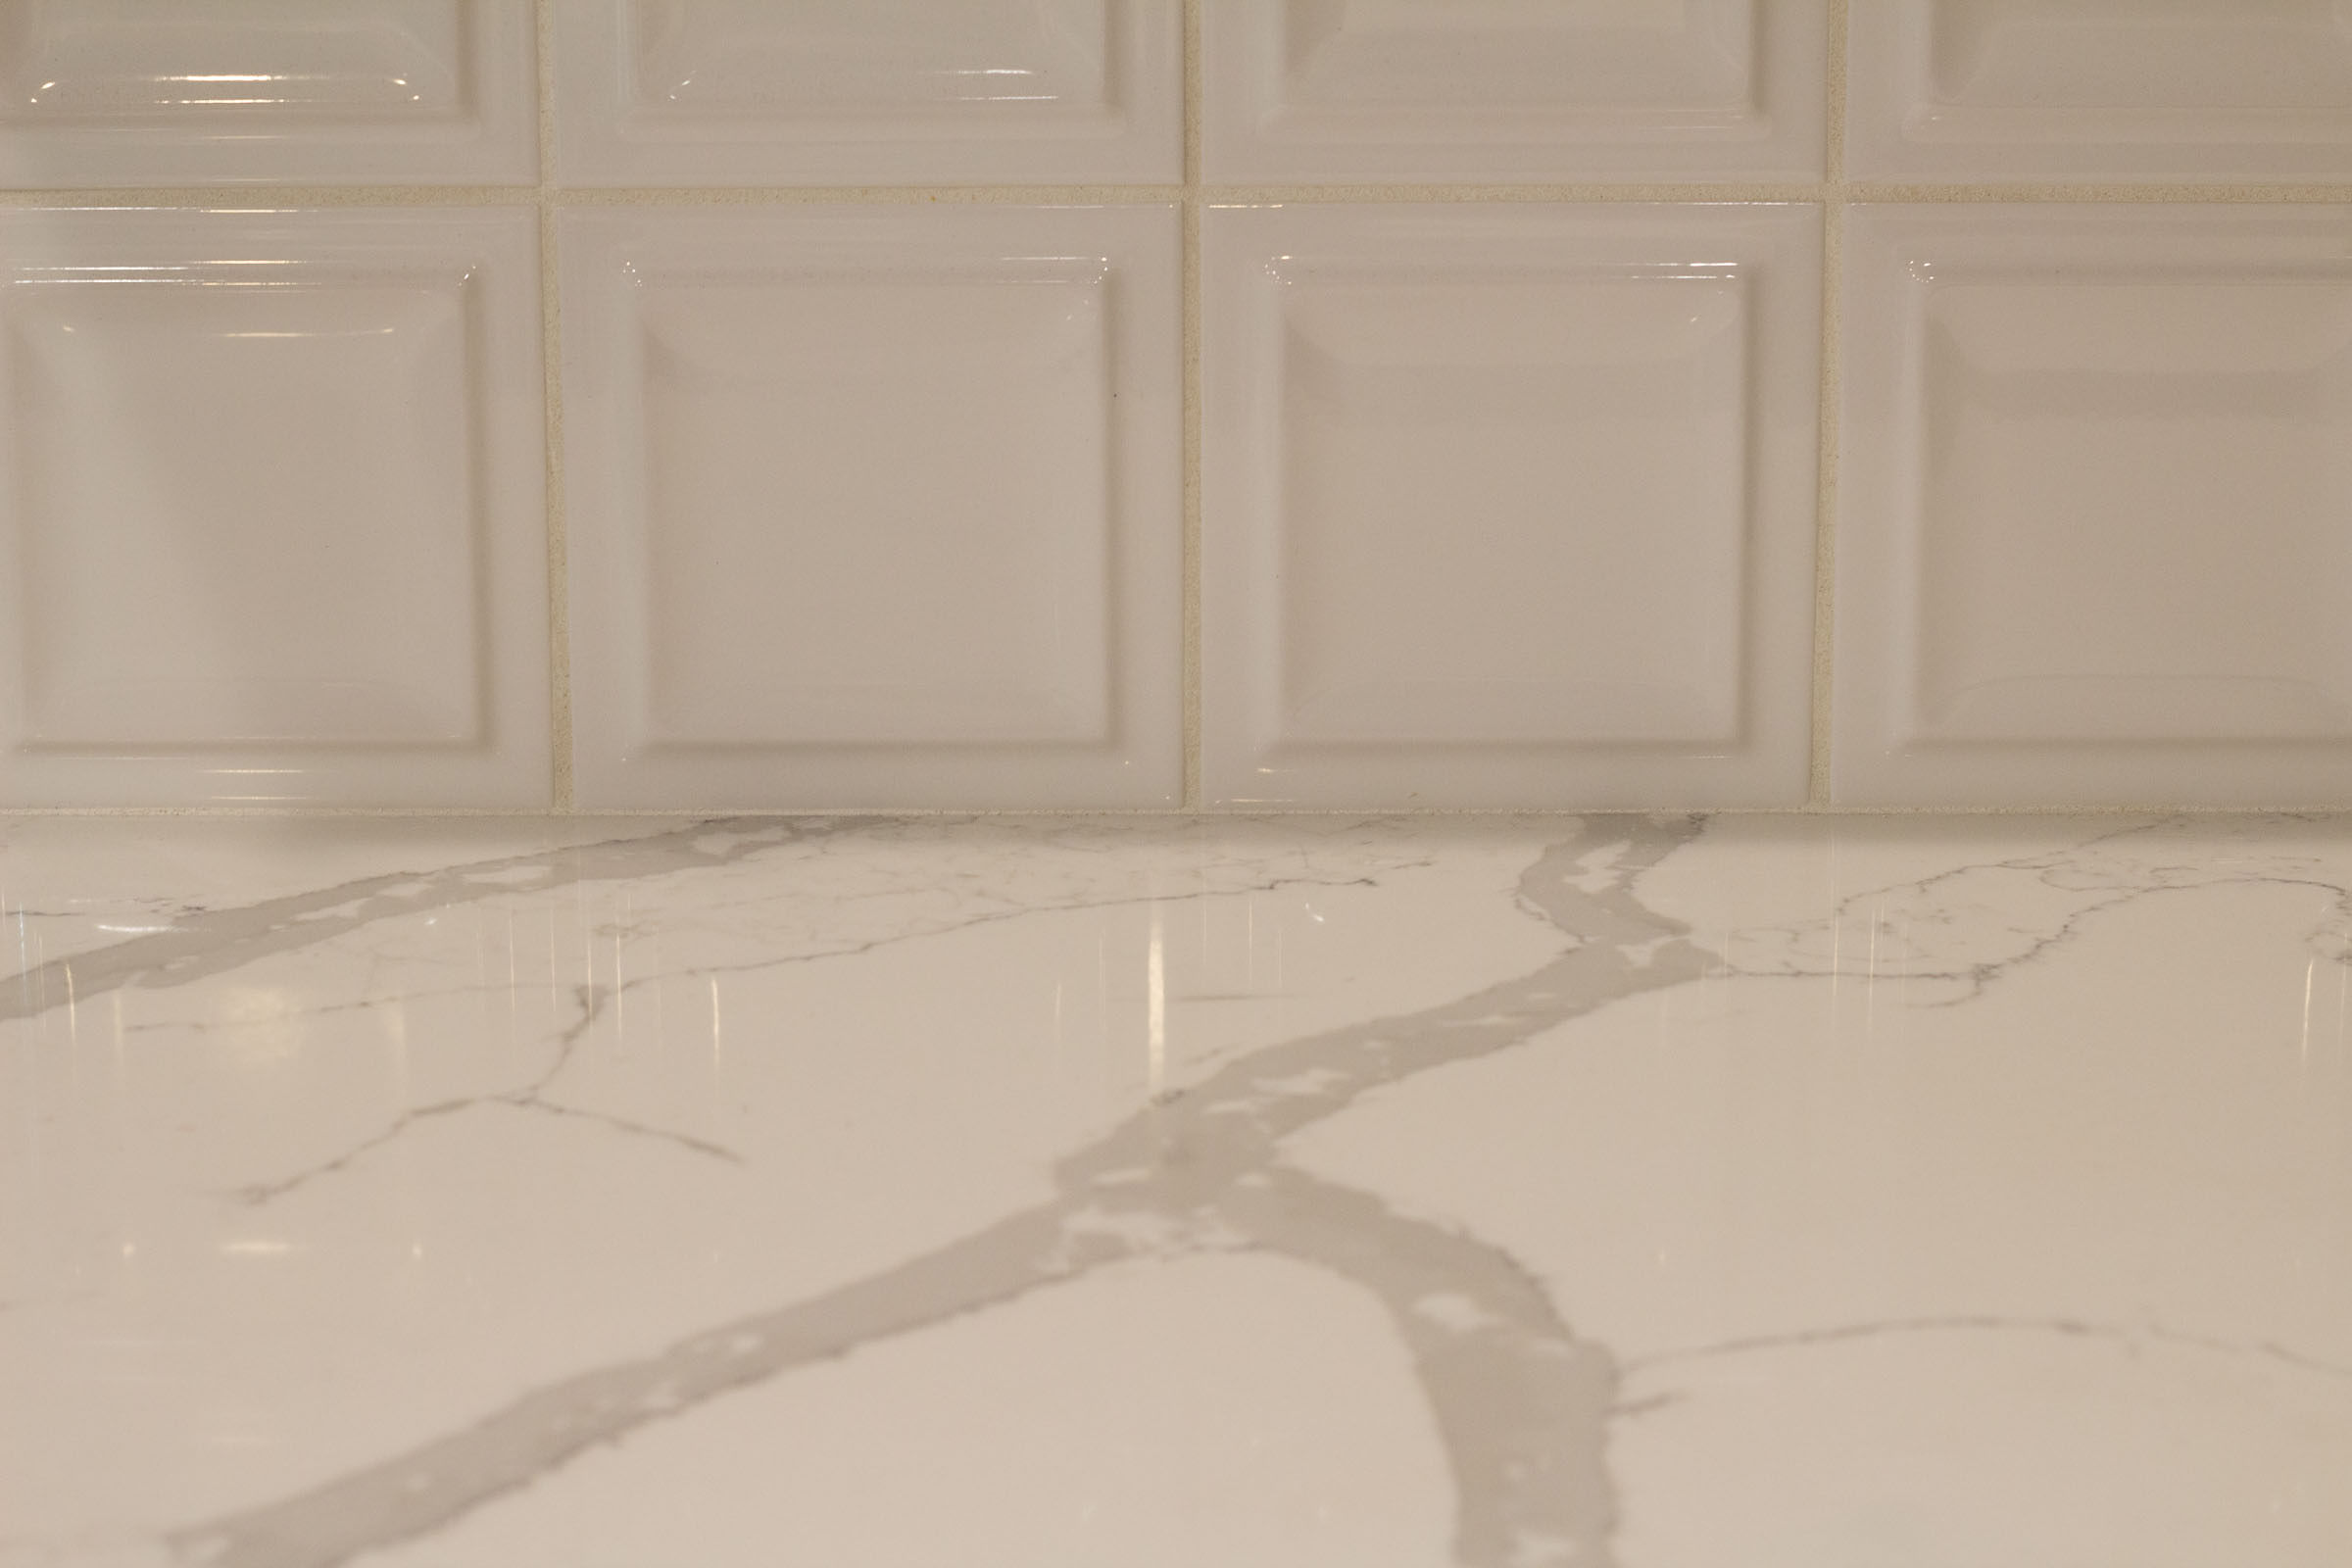 Close up photo of white countertops and square backsplash tiles